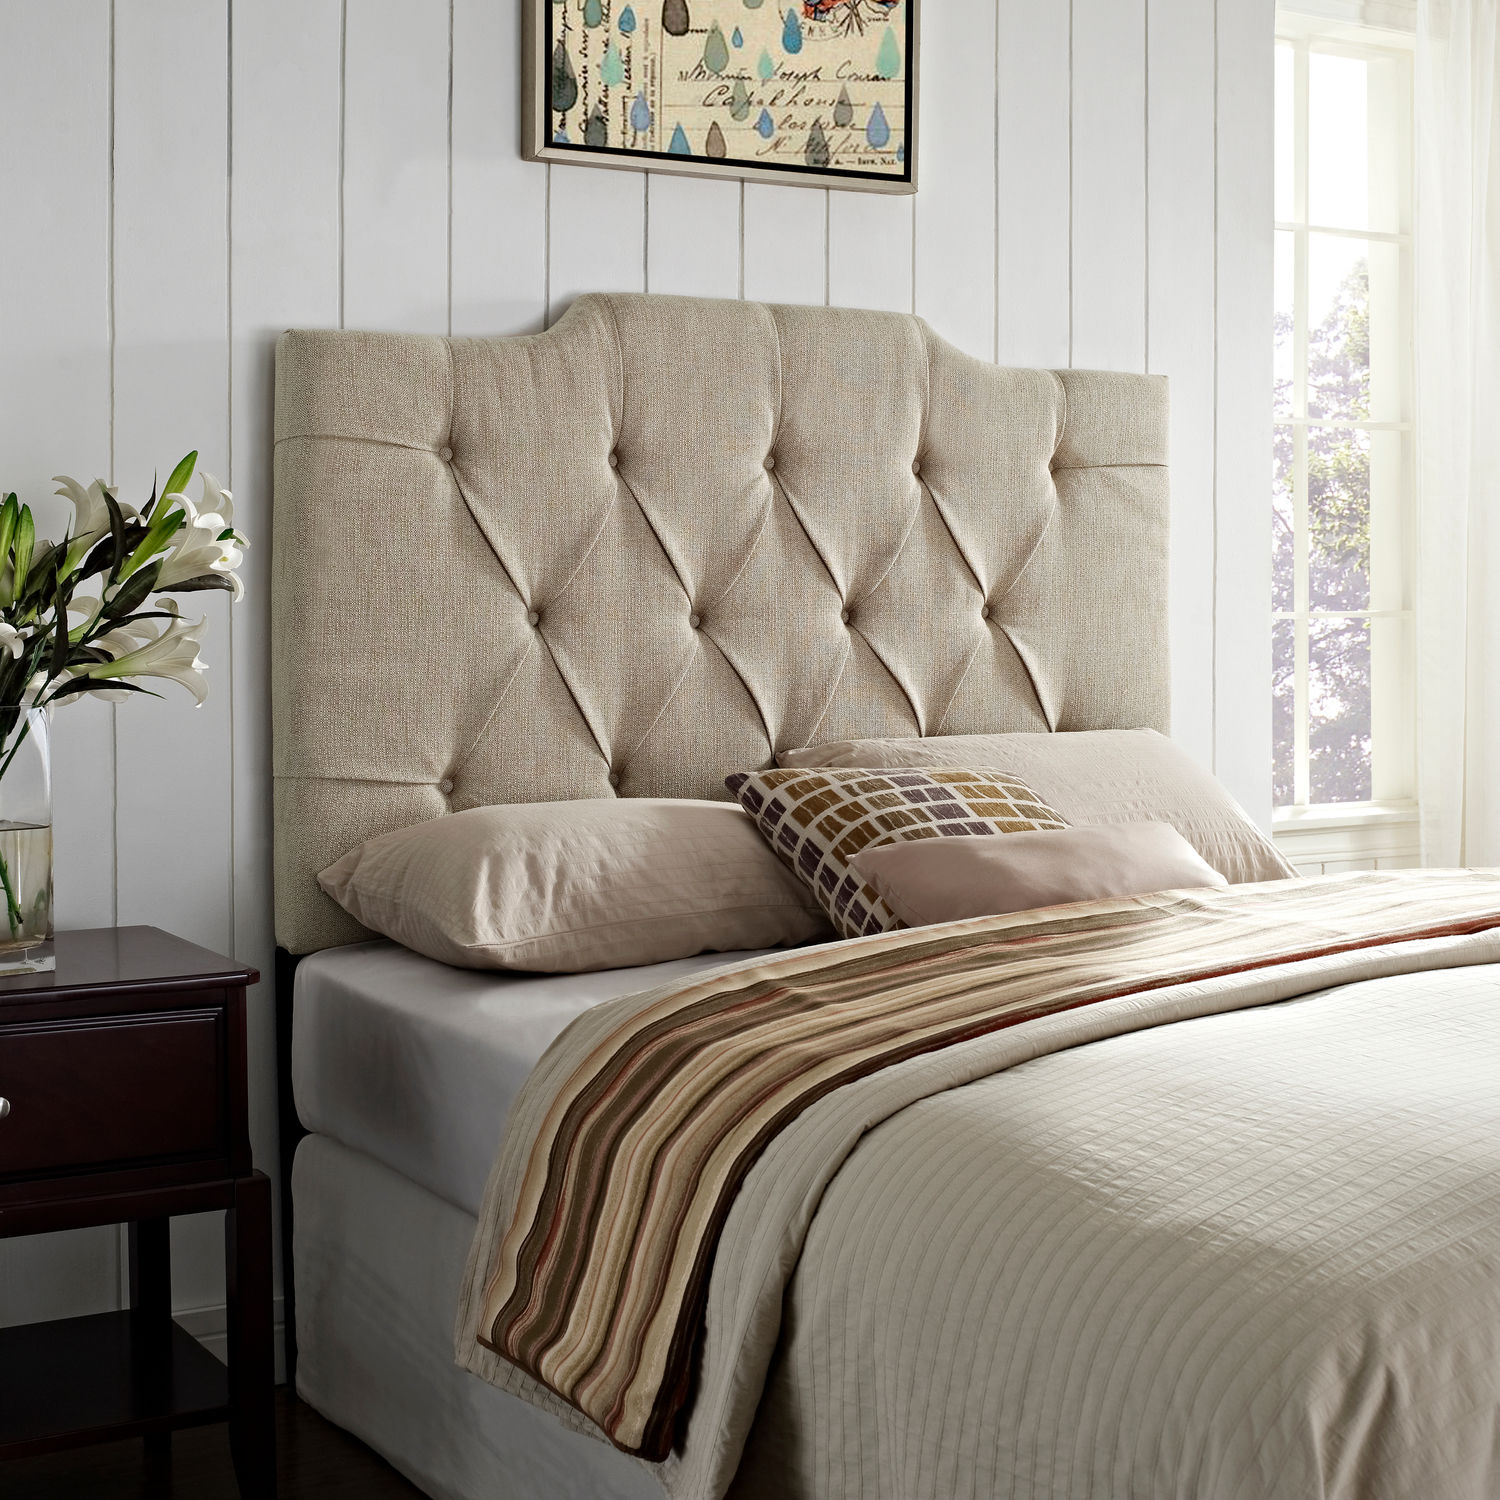 Bedroom Furniture - Augusta King/California King Upholstered Headboard